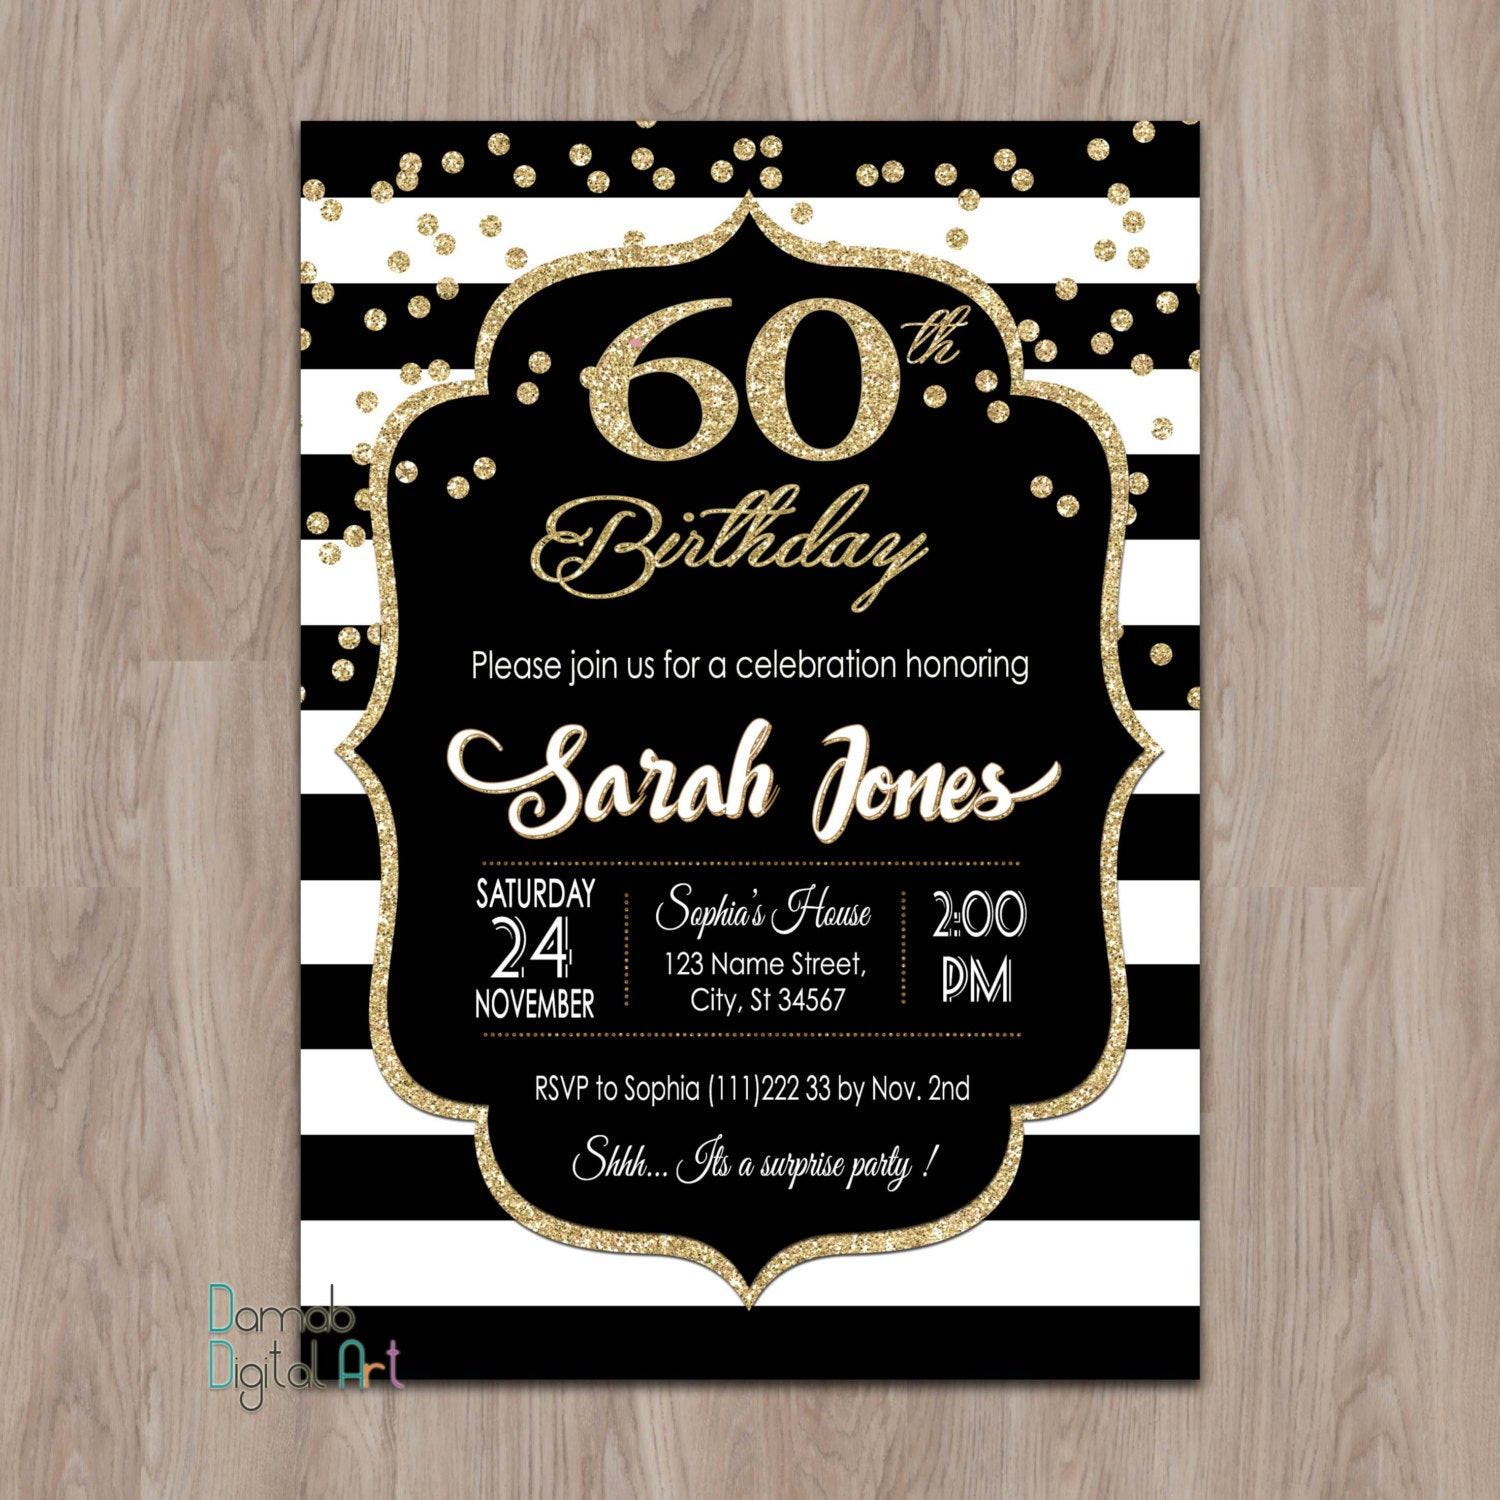 Best ideas about 60 Birthday Invitations . Save or Pin 60th birthday invitations 60th birthday invitations for Now.